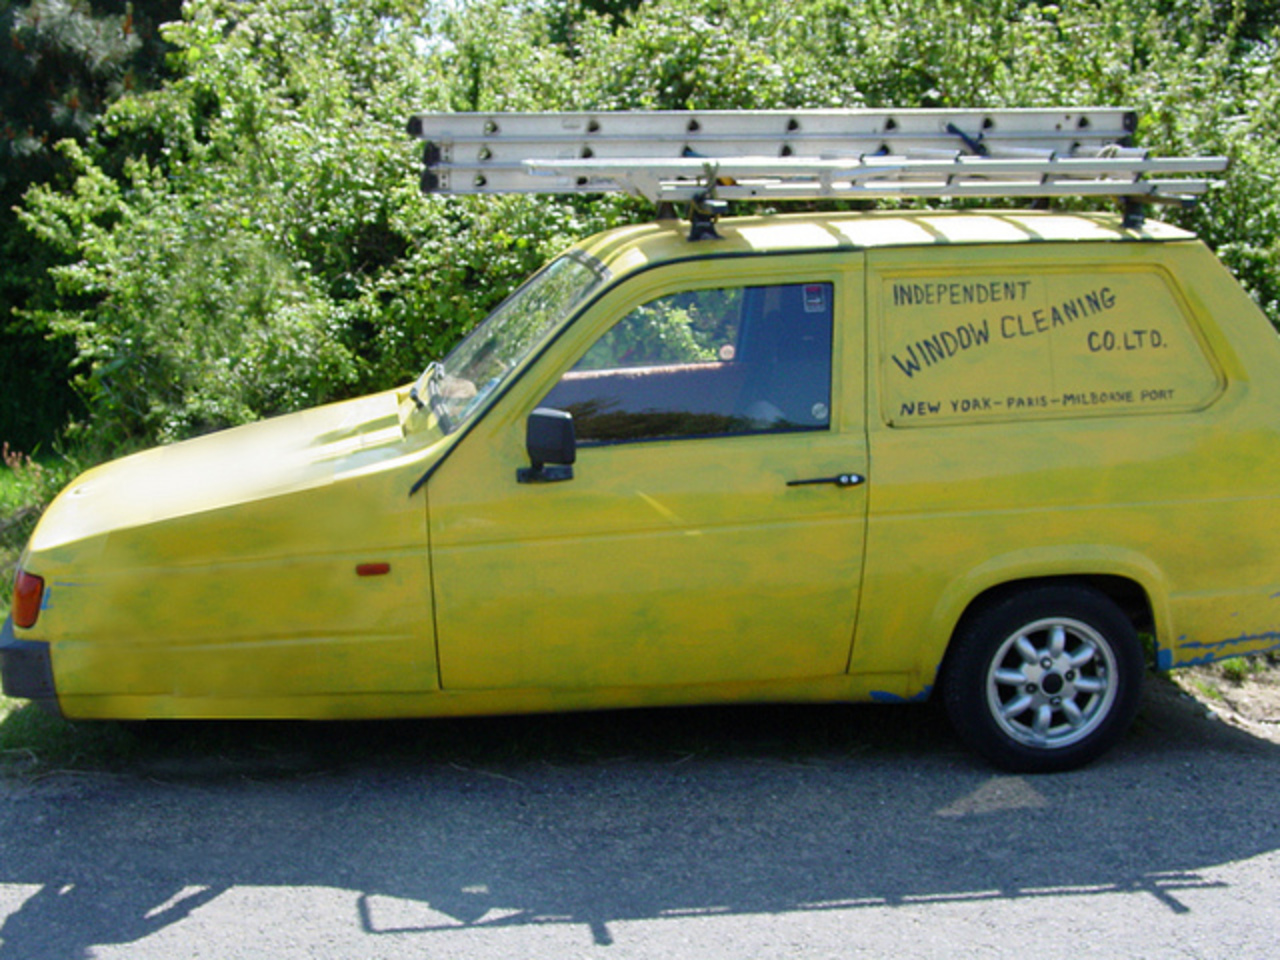 1990S RELIANT ROBIN LX | Flickr - Photo Sharing!